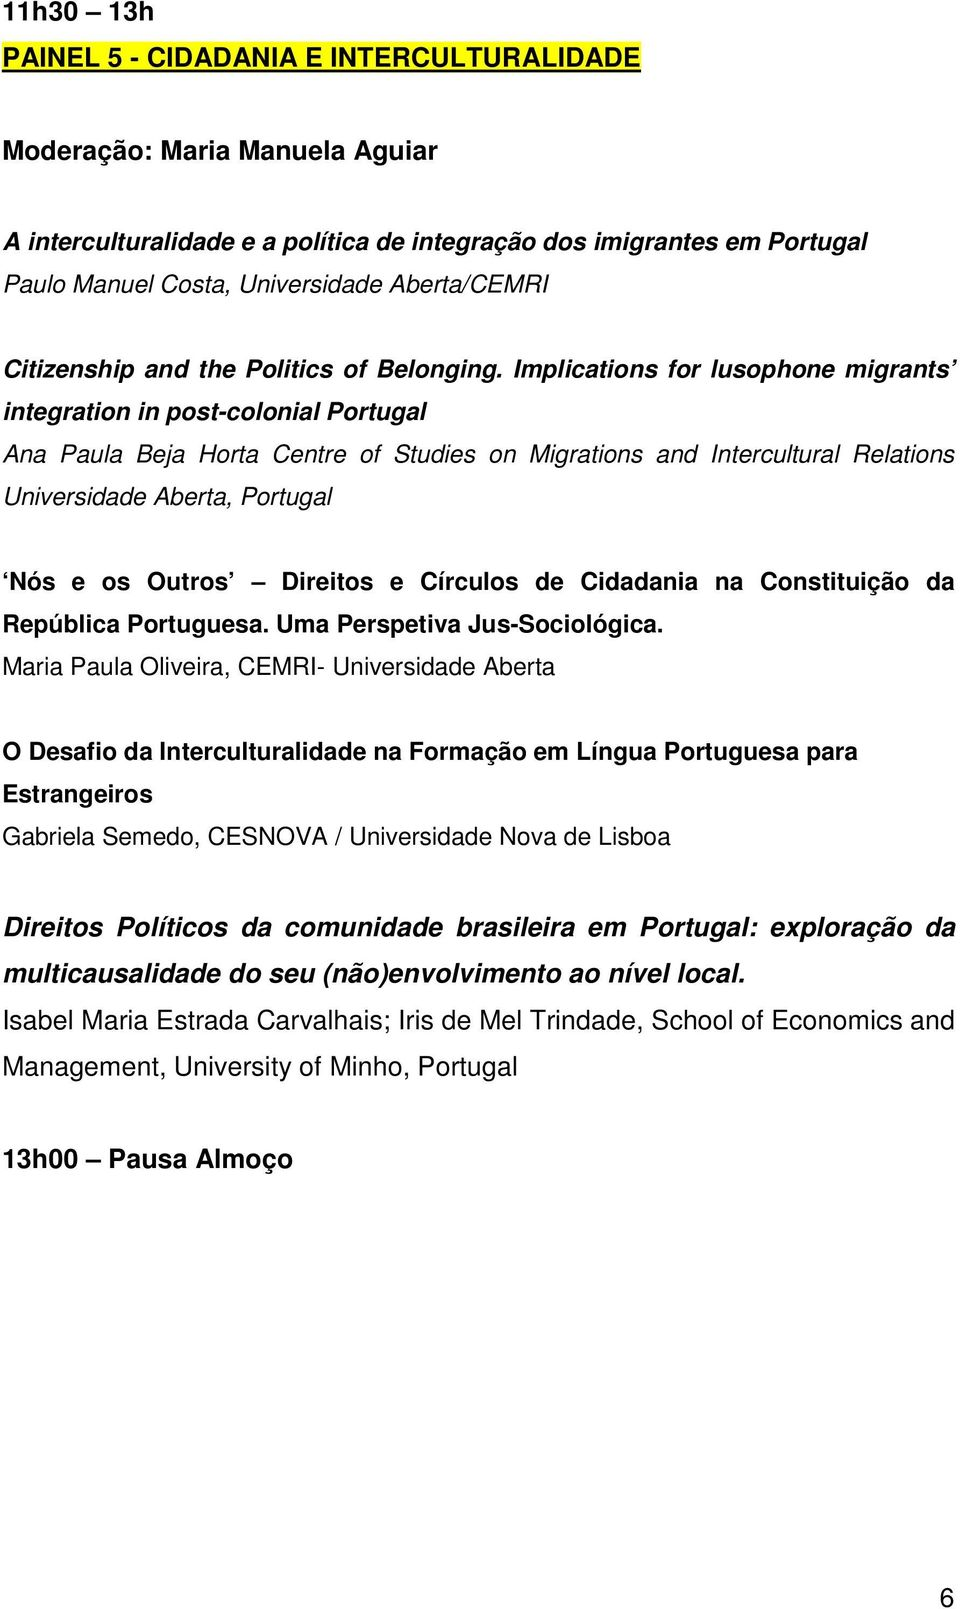 Implications for lusophone migrants integration in post-colonial Portugal Ana Paula Beja Horta Centre of Studies on Migrations and Intercultural Relations Universidade Aberta, Portugal Nós e os